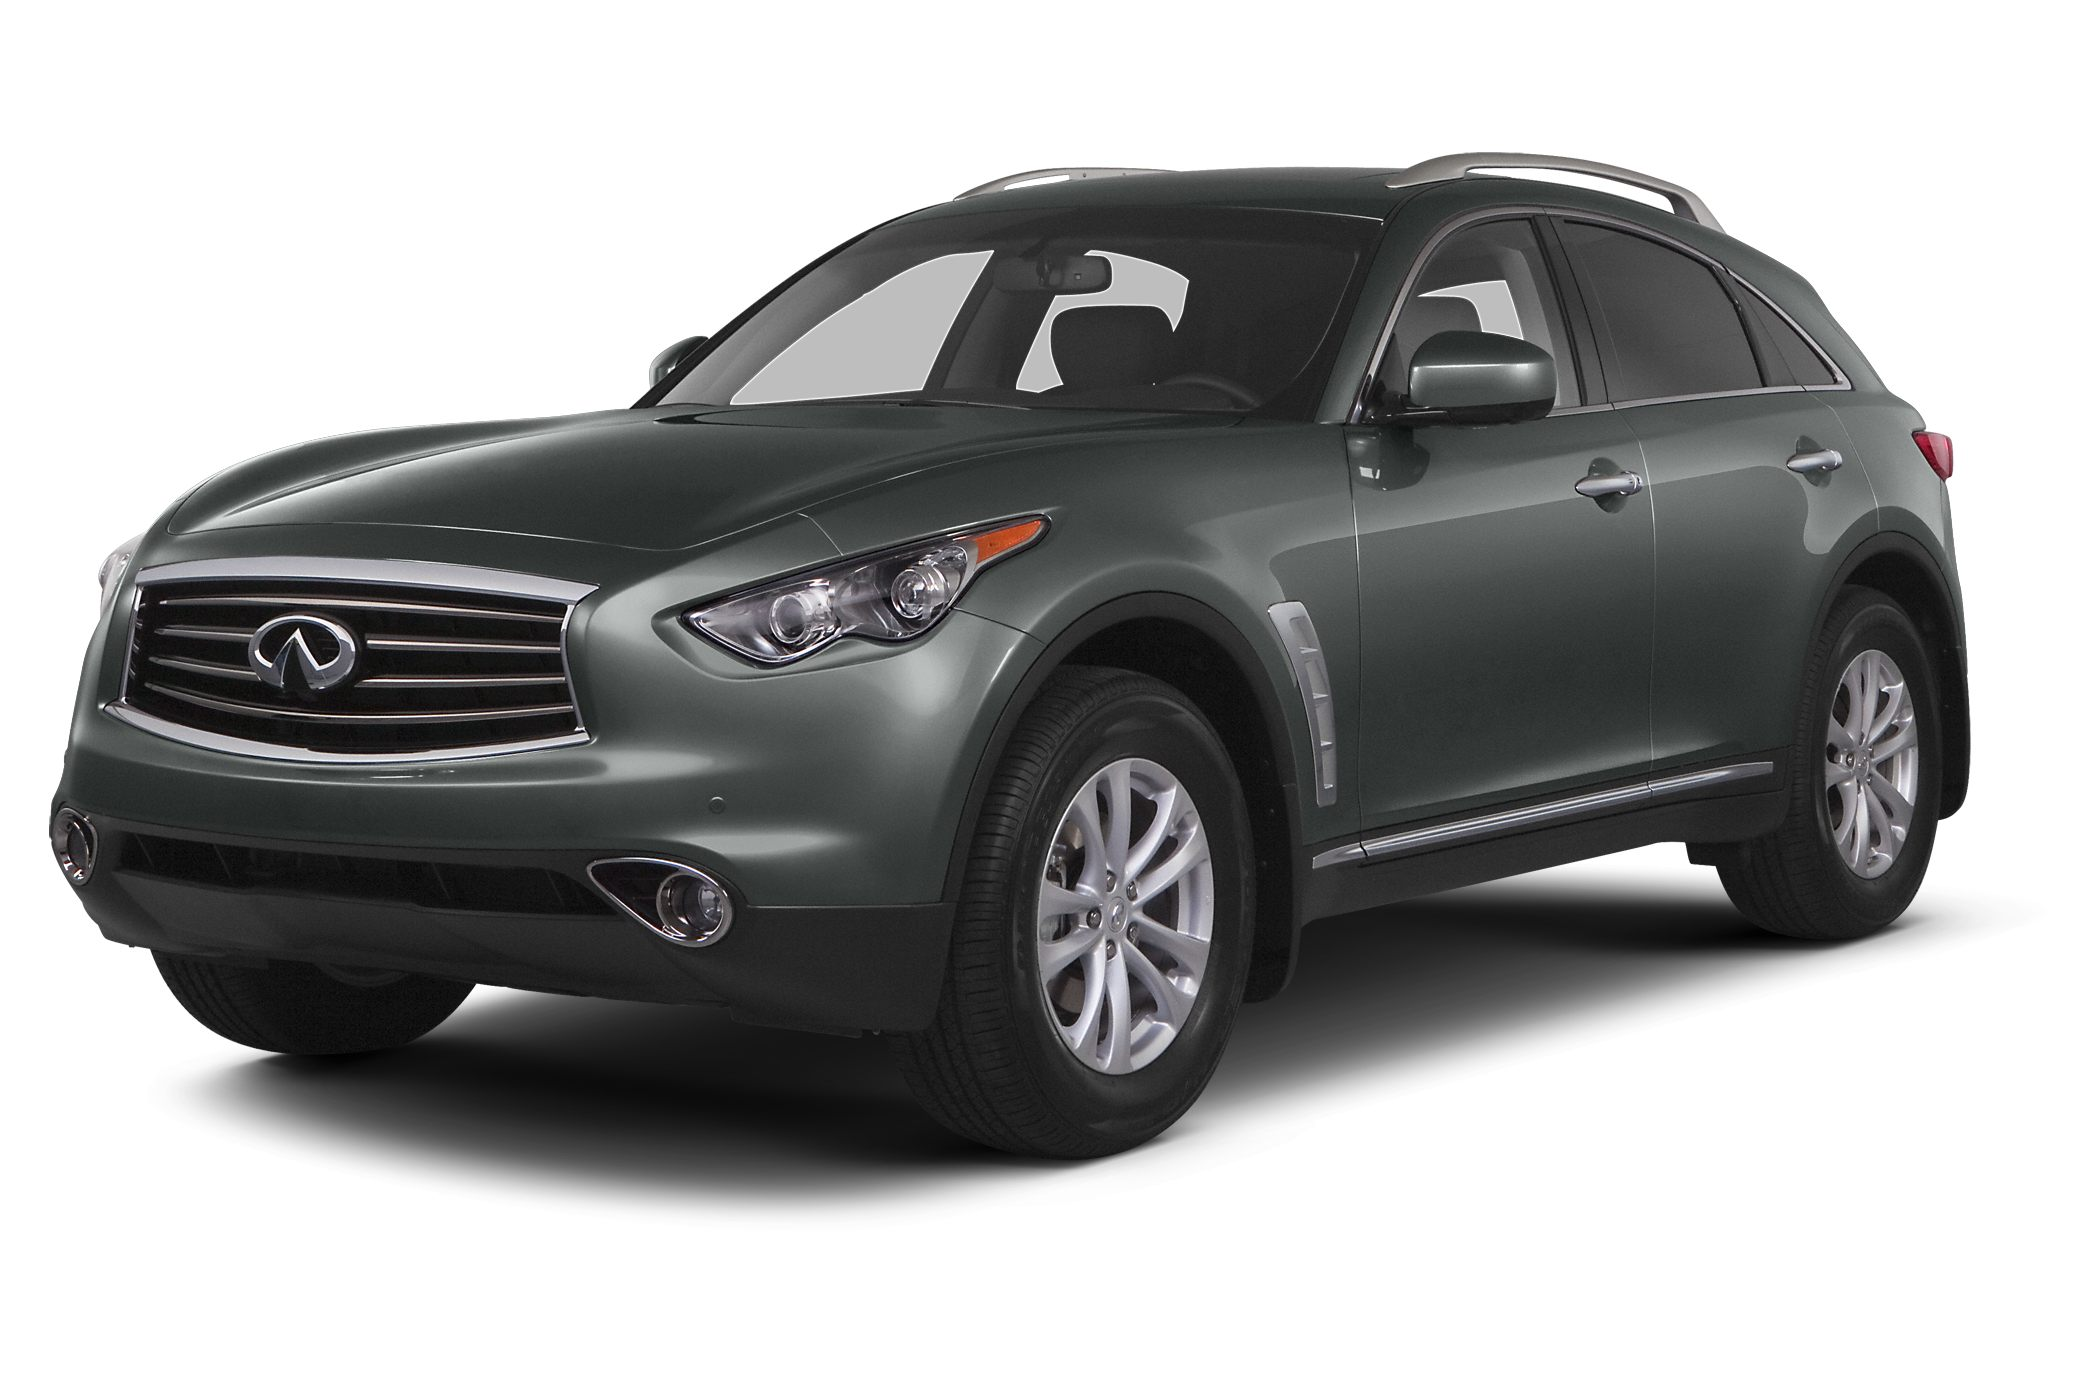 2015 Infiniti QX70 Base SUV for sale in Houston for $59,025 with 0 miles.